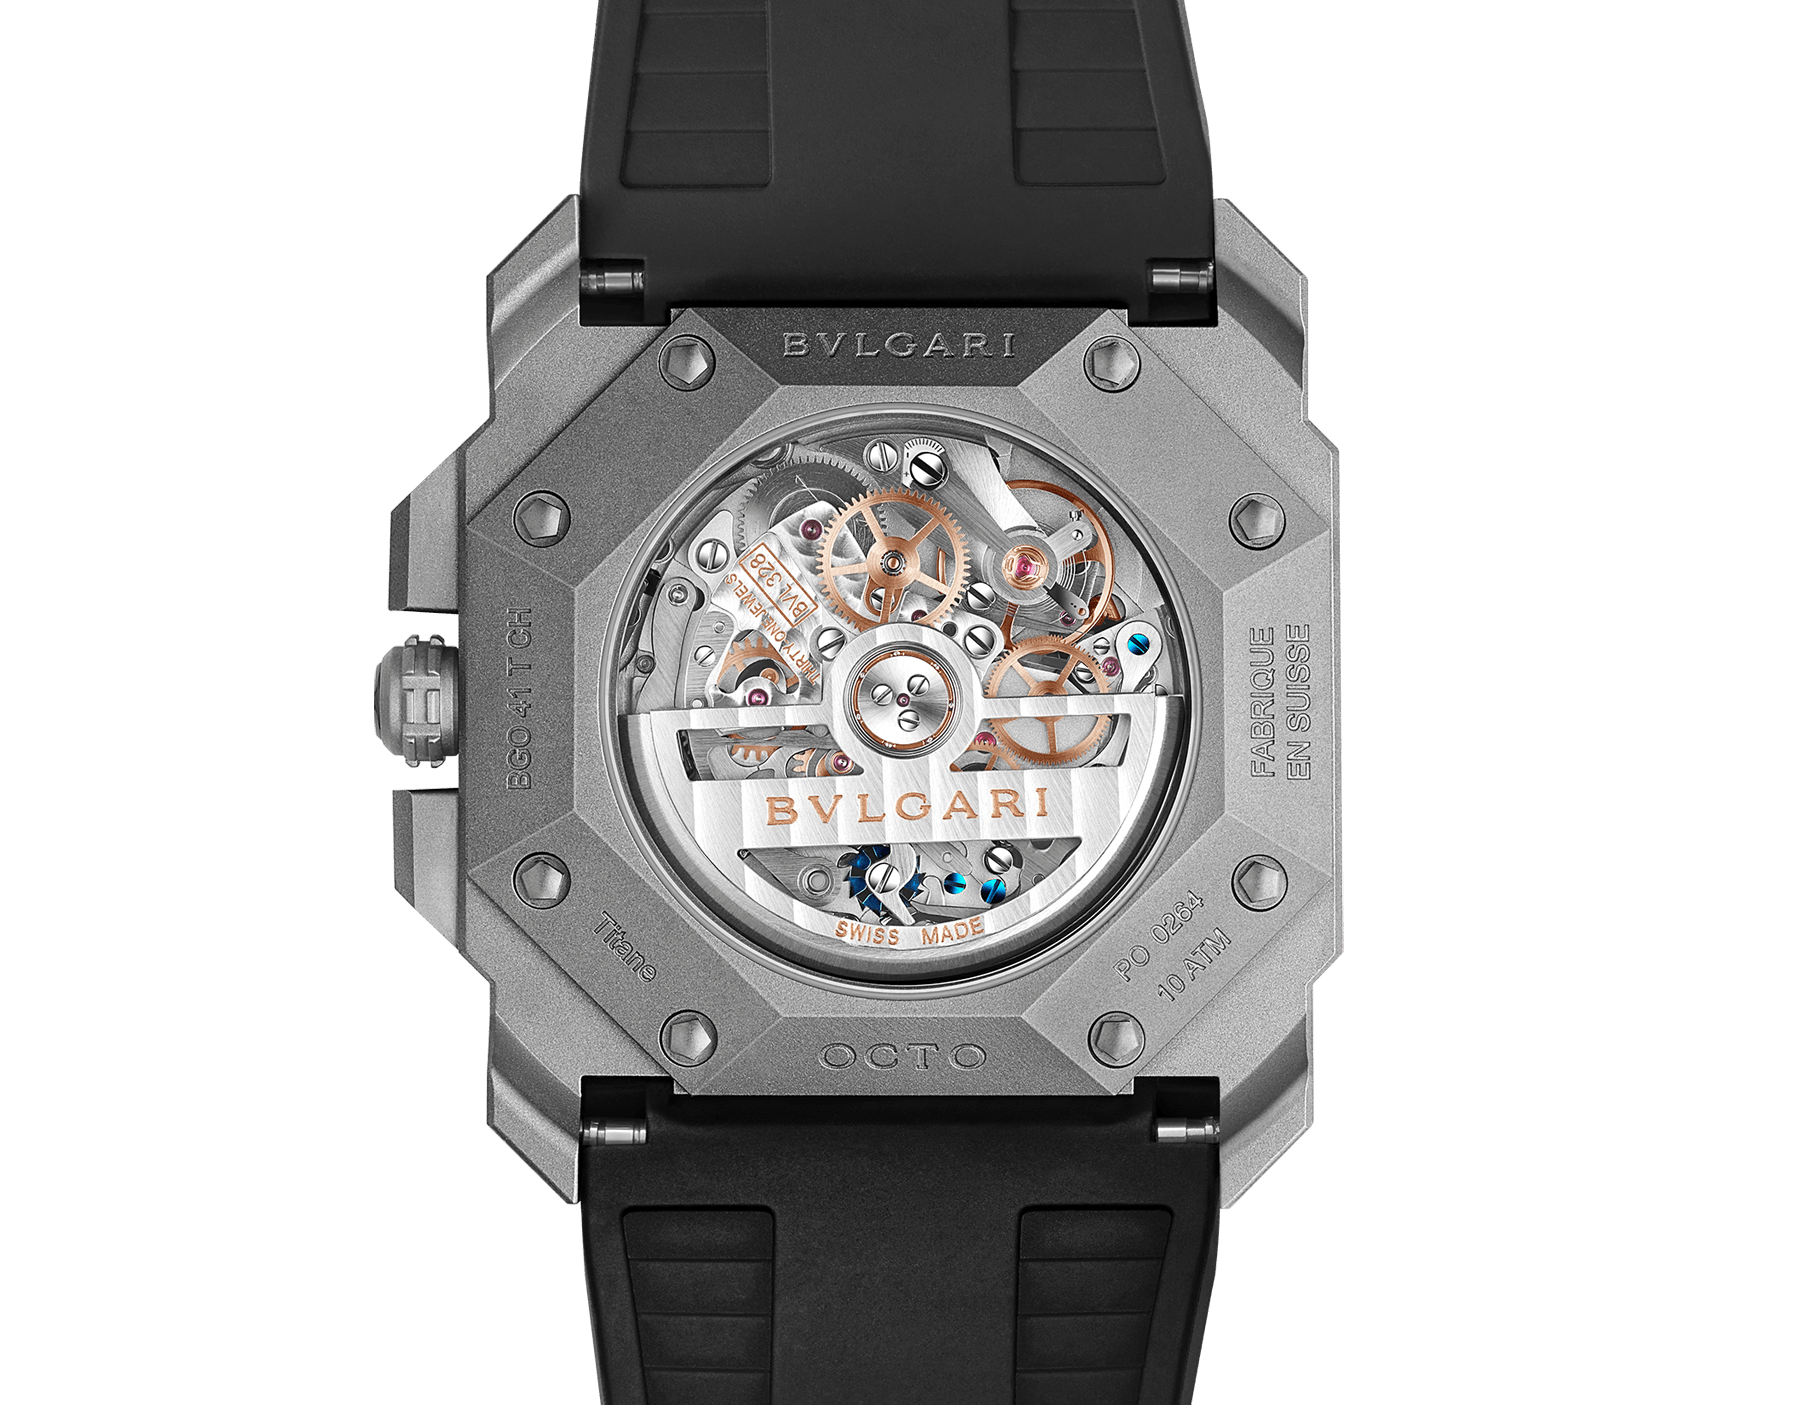 Octo L'Originale watch with mechanical manufacture movement, integrated high-frequency chronograph (5Hz), column wheel mechanism, silicon escapement, automatic winding and date, titanium case and dial, and black rubber bracelet 102859 image 4